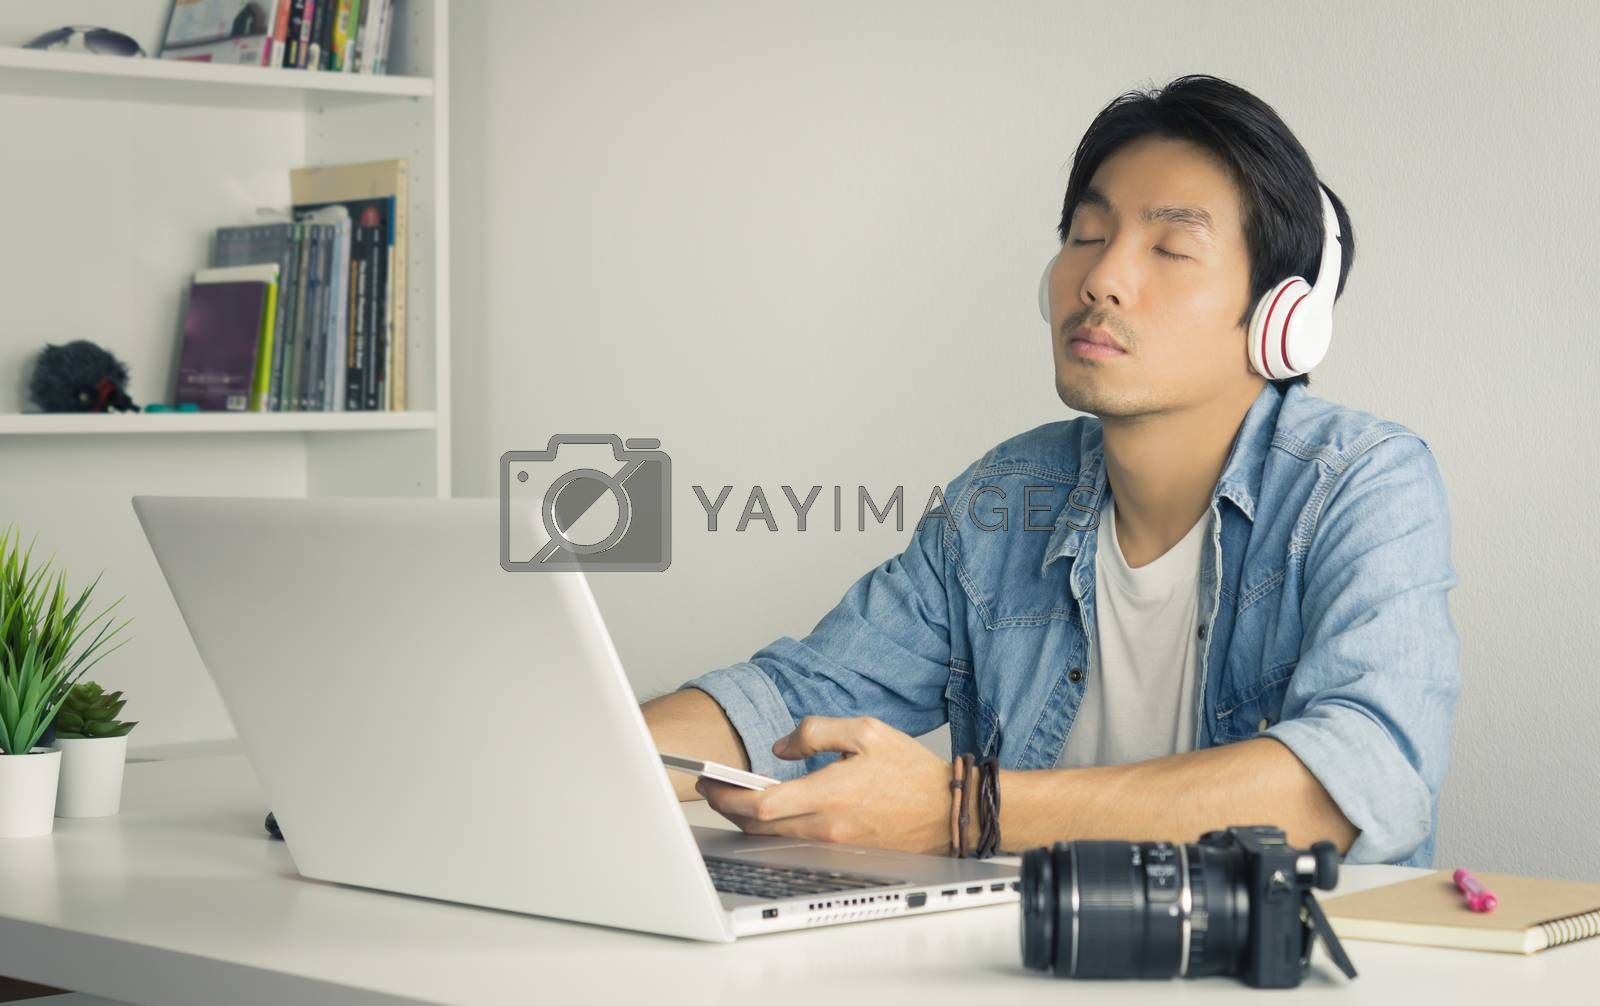 Portrait Asian Photographer with Laptop and Smartphone and Headphone in Home Office. Photographer listening to music by use bluetooth technology in smartphone